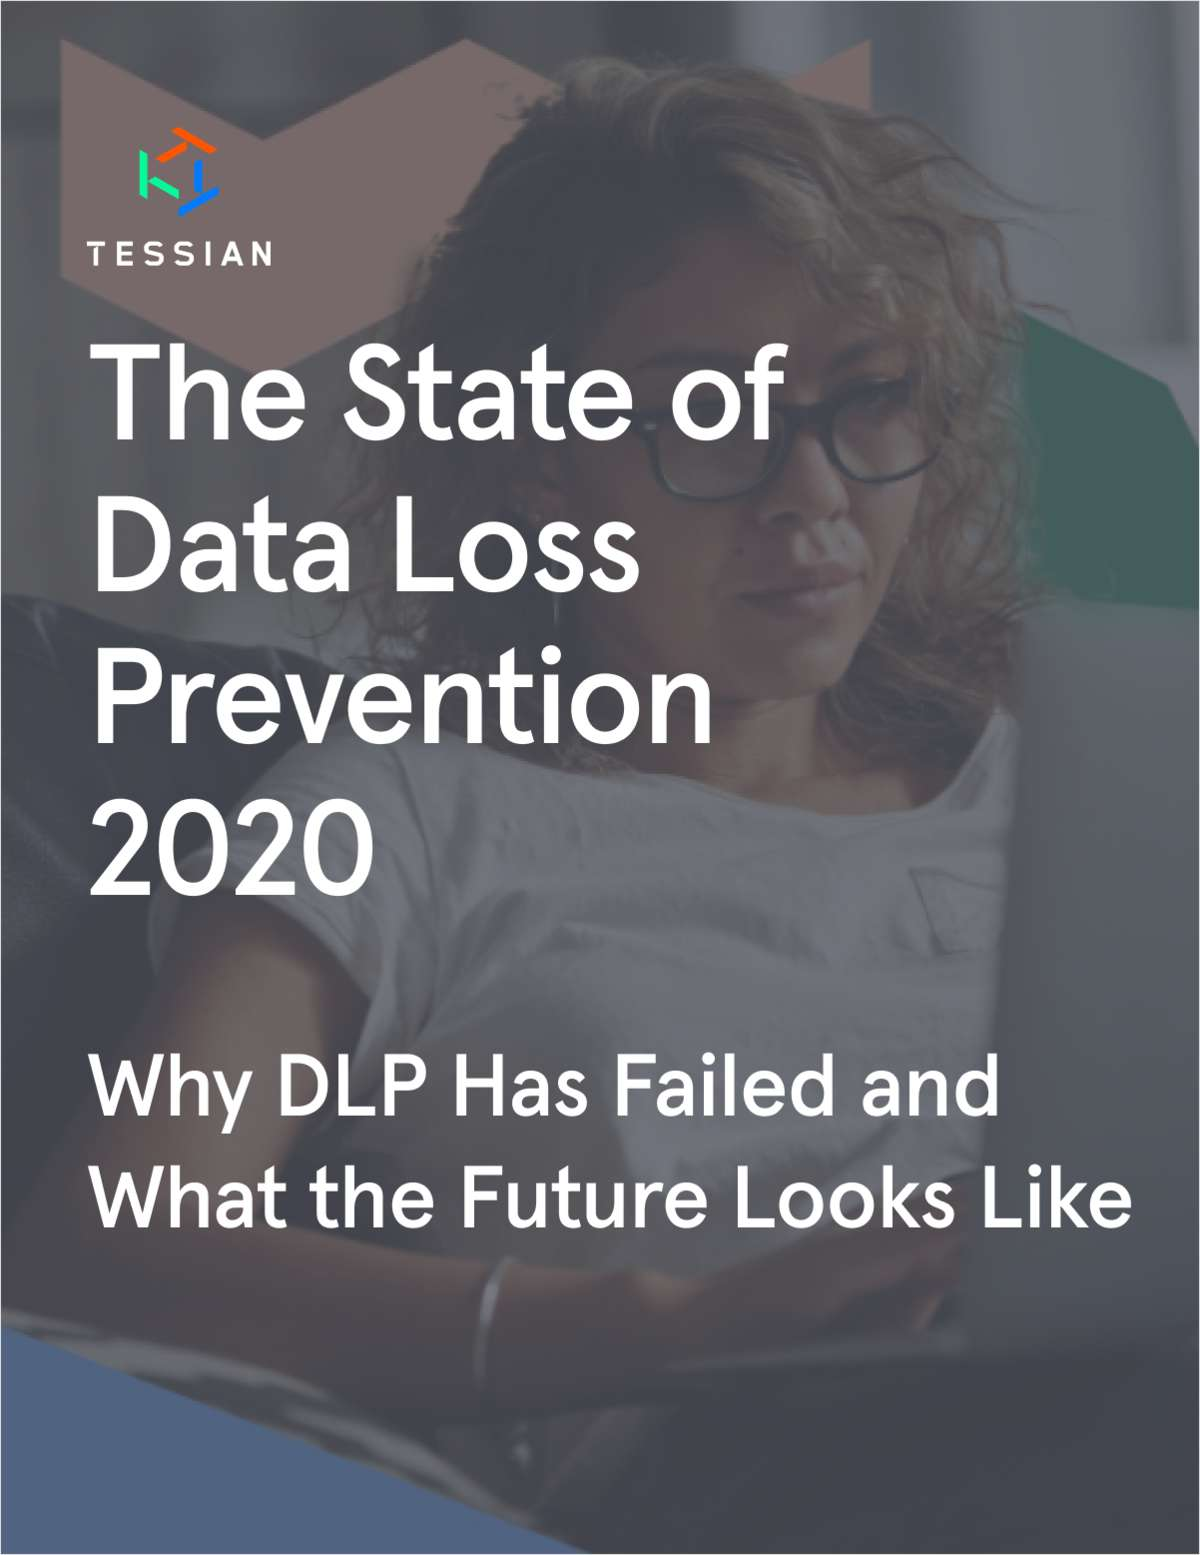 The State of Data Loss Prevention 2020: Why DLP Has Failed and What the Future Looks Like